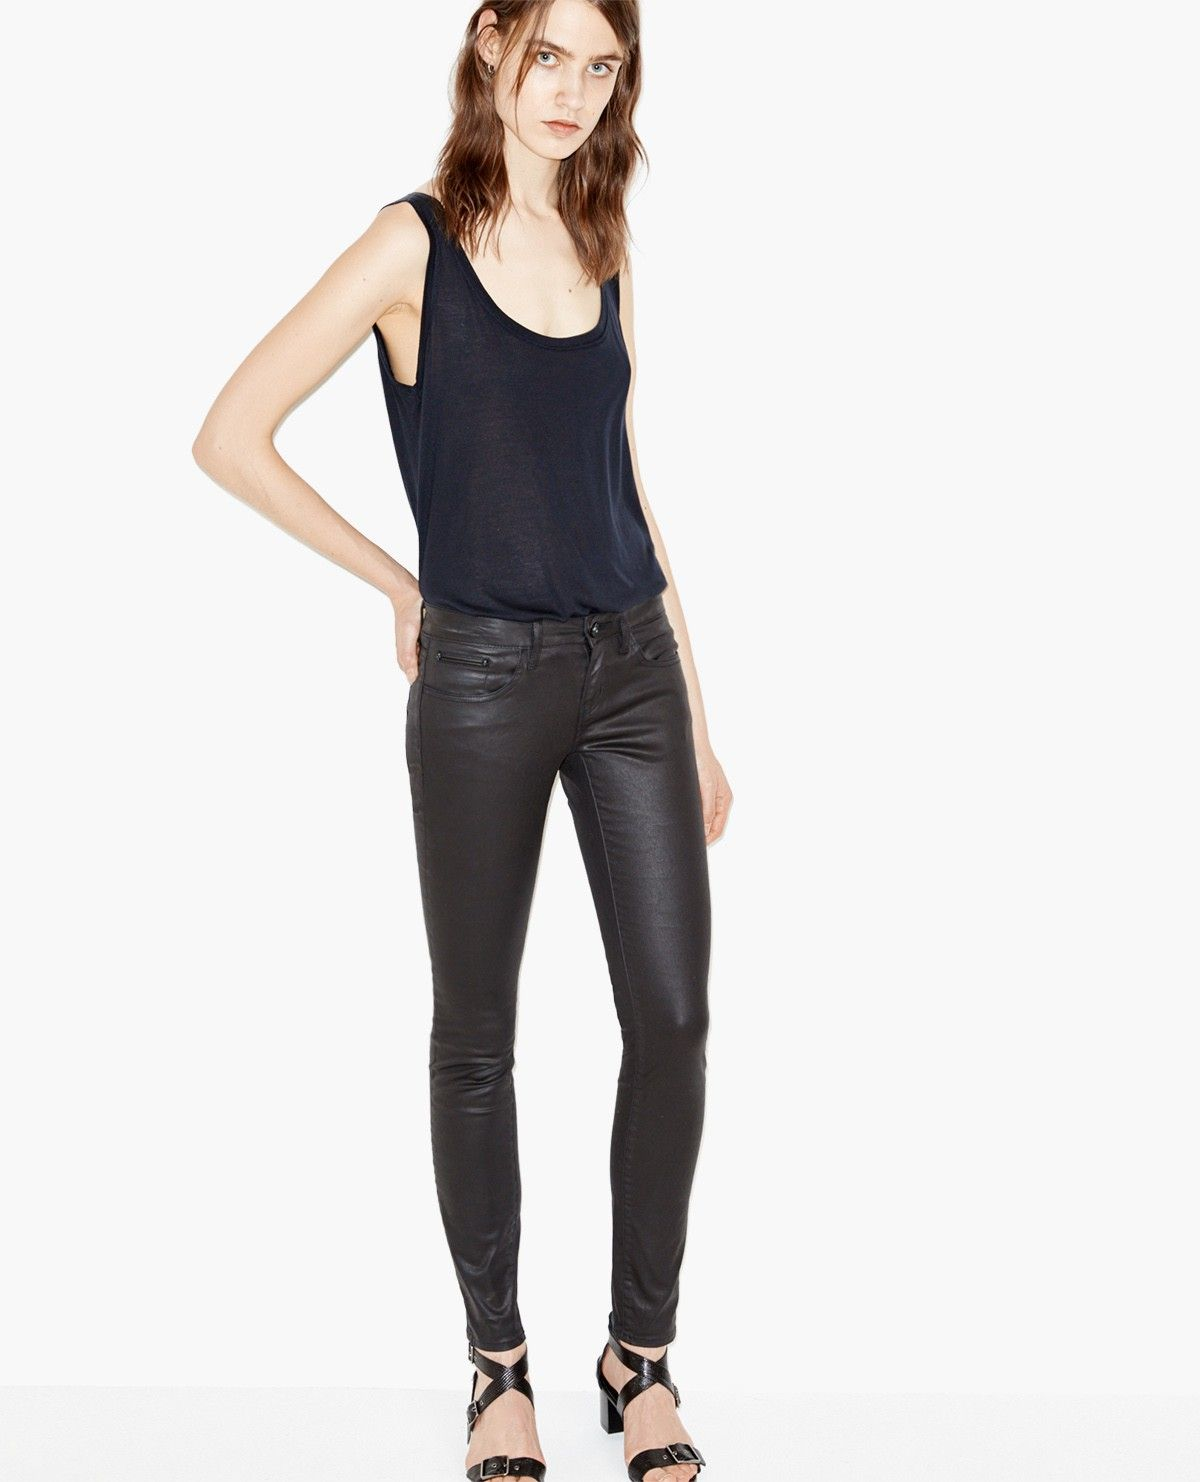 Leather effect jeans, Skin cut - Denim - The Kooples